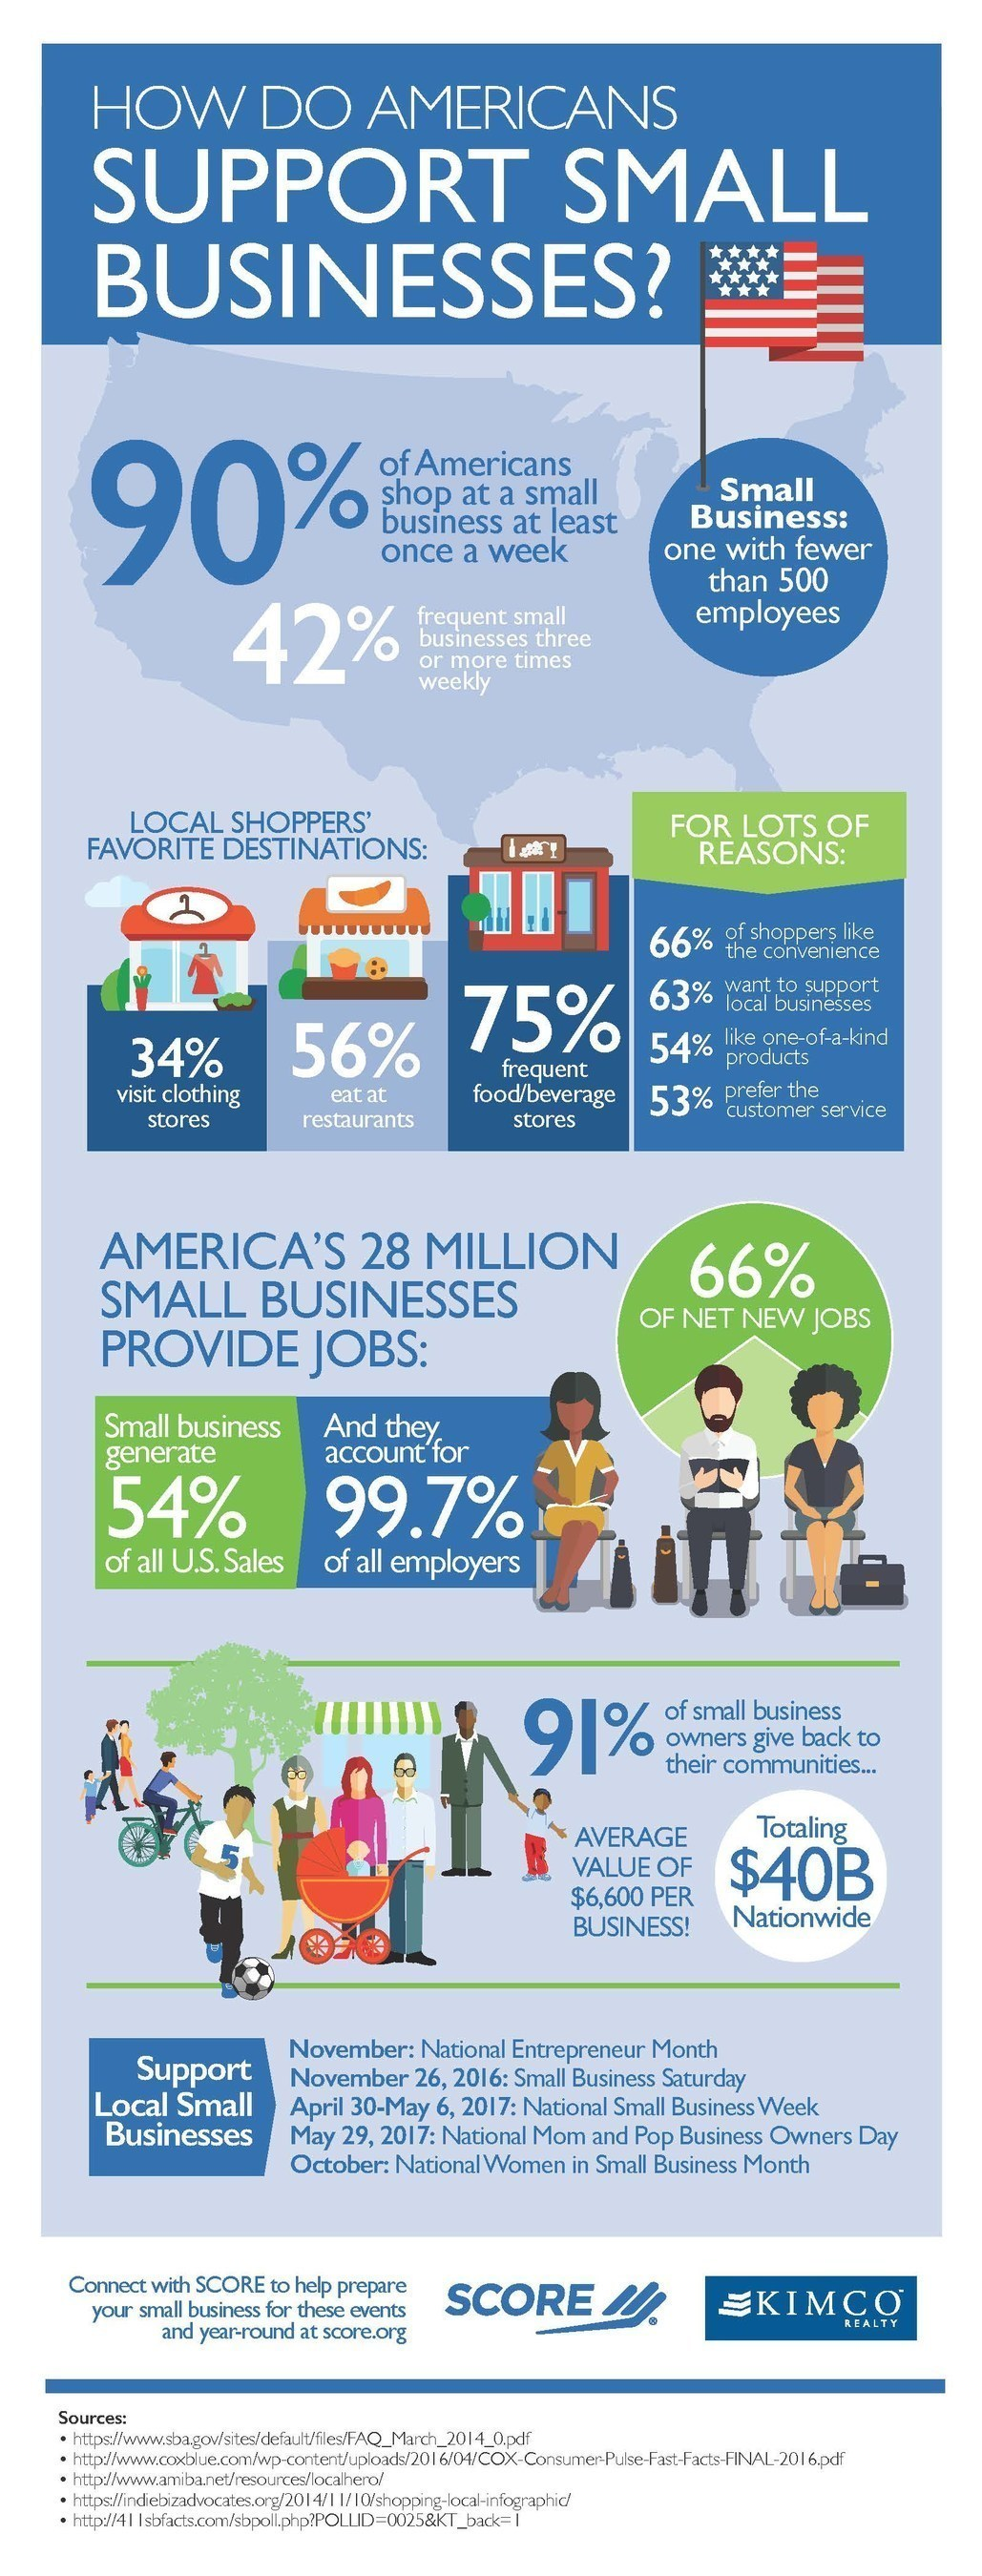 SCORE, the nation's largest network of volunteer, expert business mentors, has gathered statistics that show strong consumer support for America's 28 million small businesses going into the busy 2016 holiday shopping season.